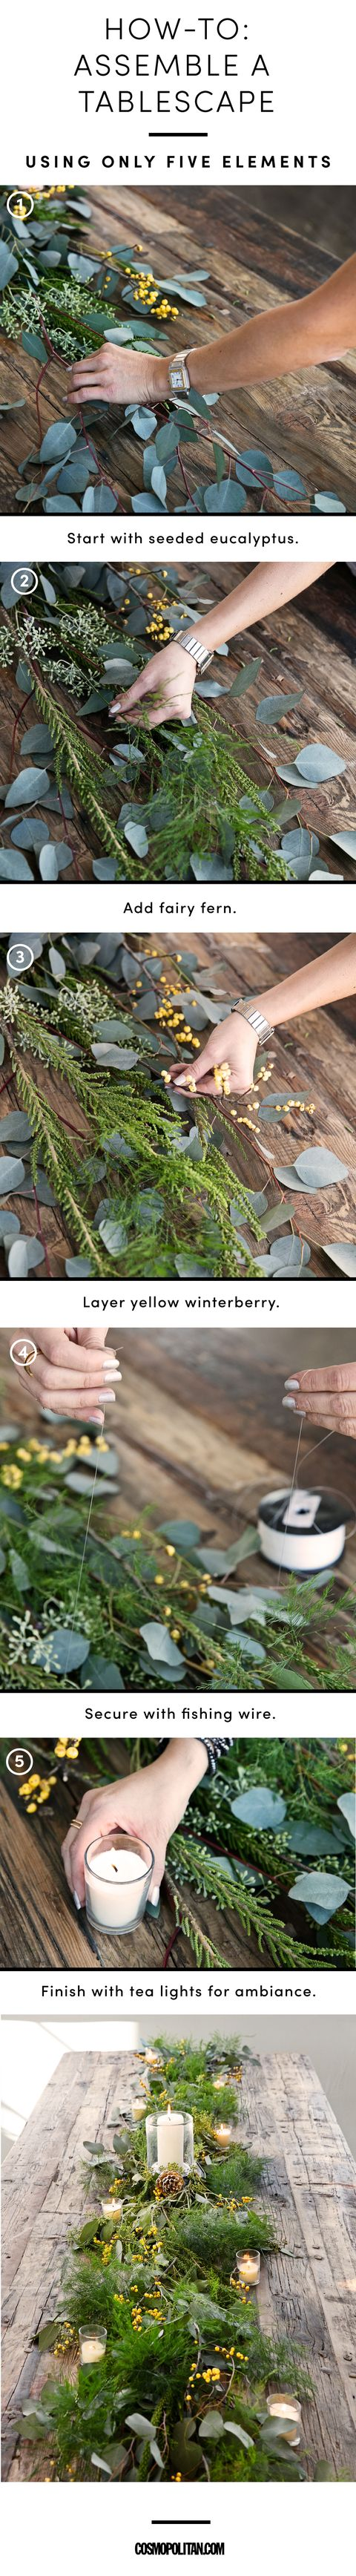 21 diy wedding flowers tips how to save money on wedding flowers create a beautiful tablescape with inexpensive flowers and greenery izmirmasajfo